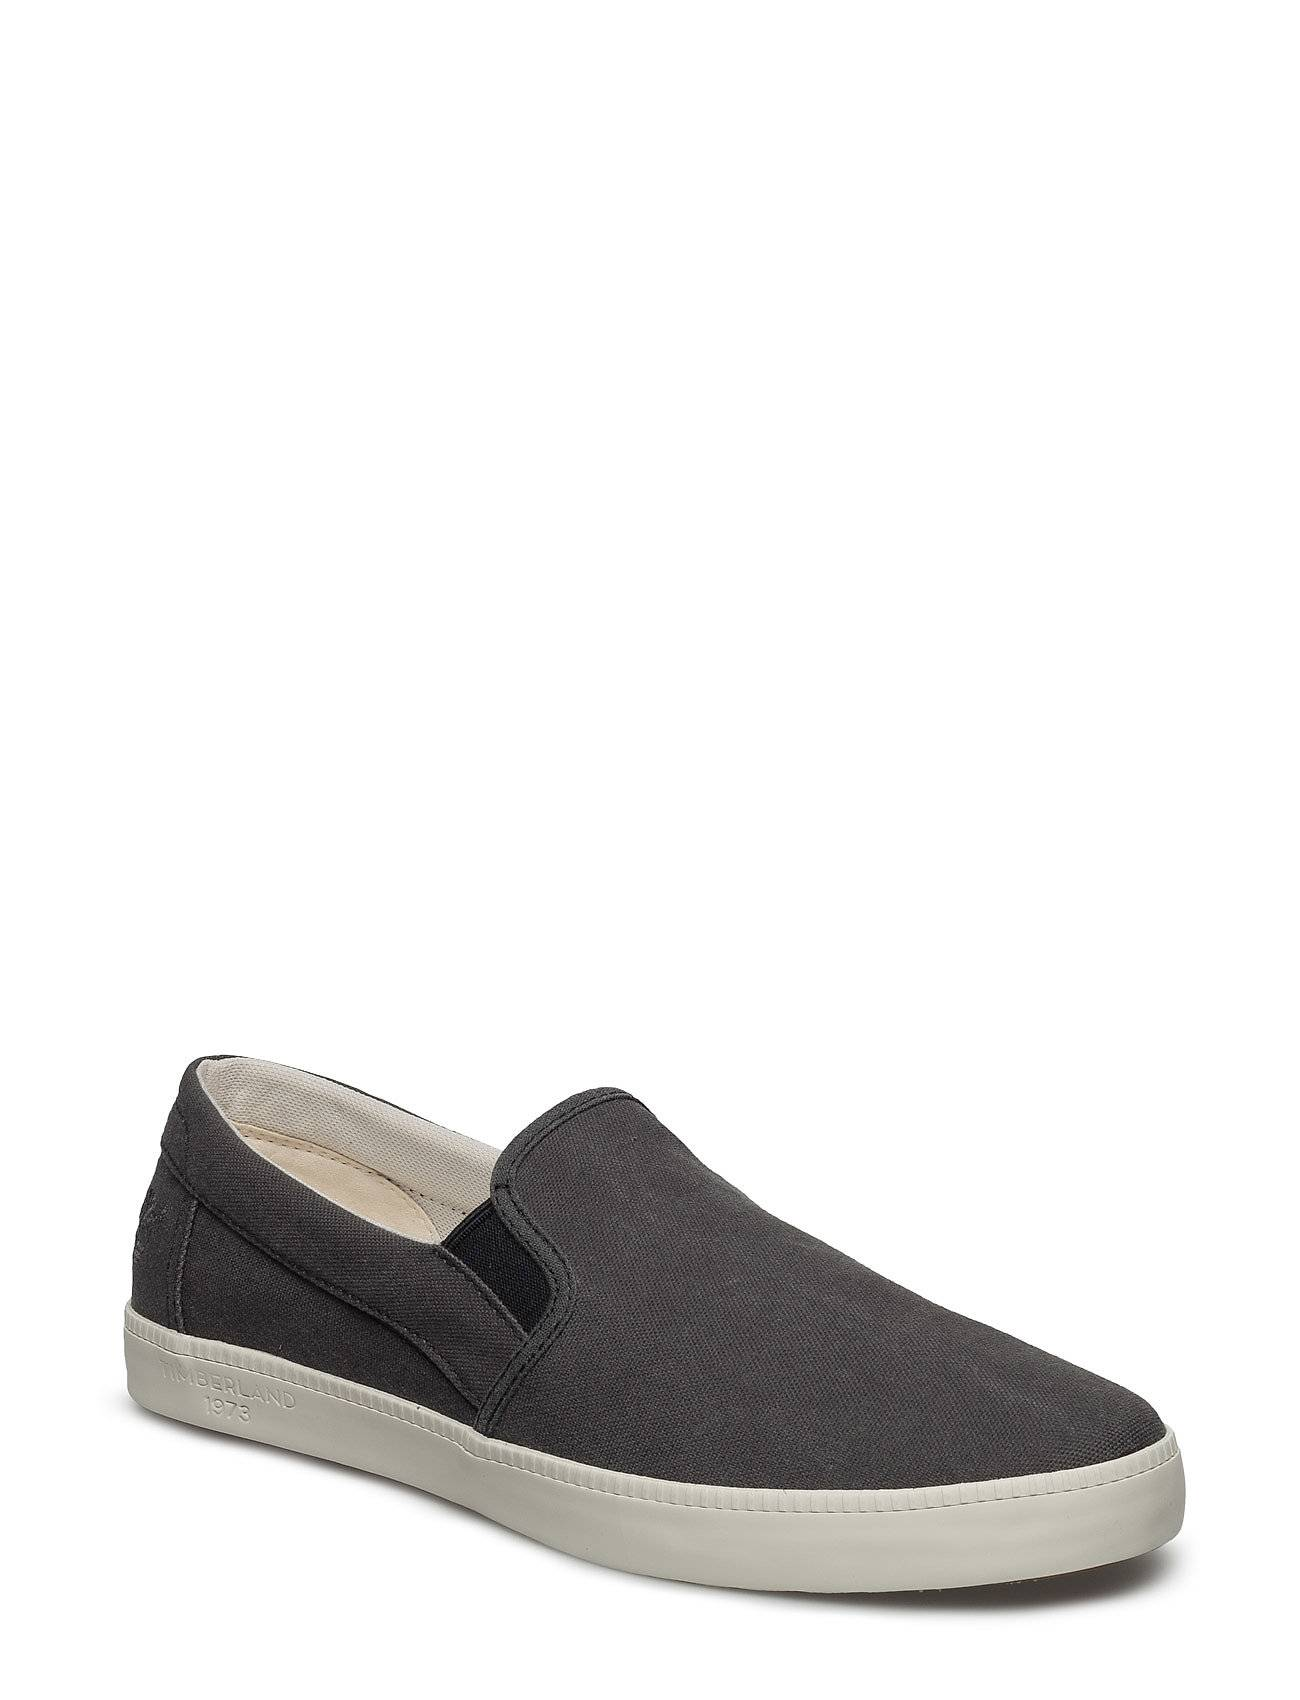 Timberland Newport Bay Canvas Plain